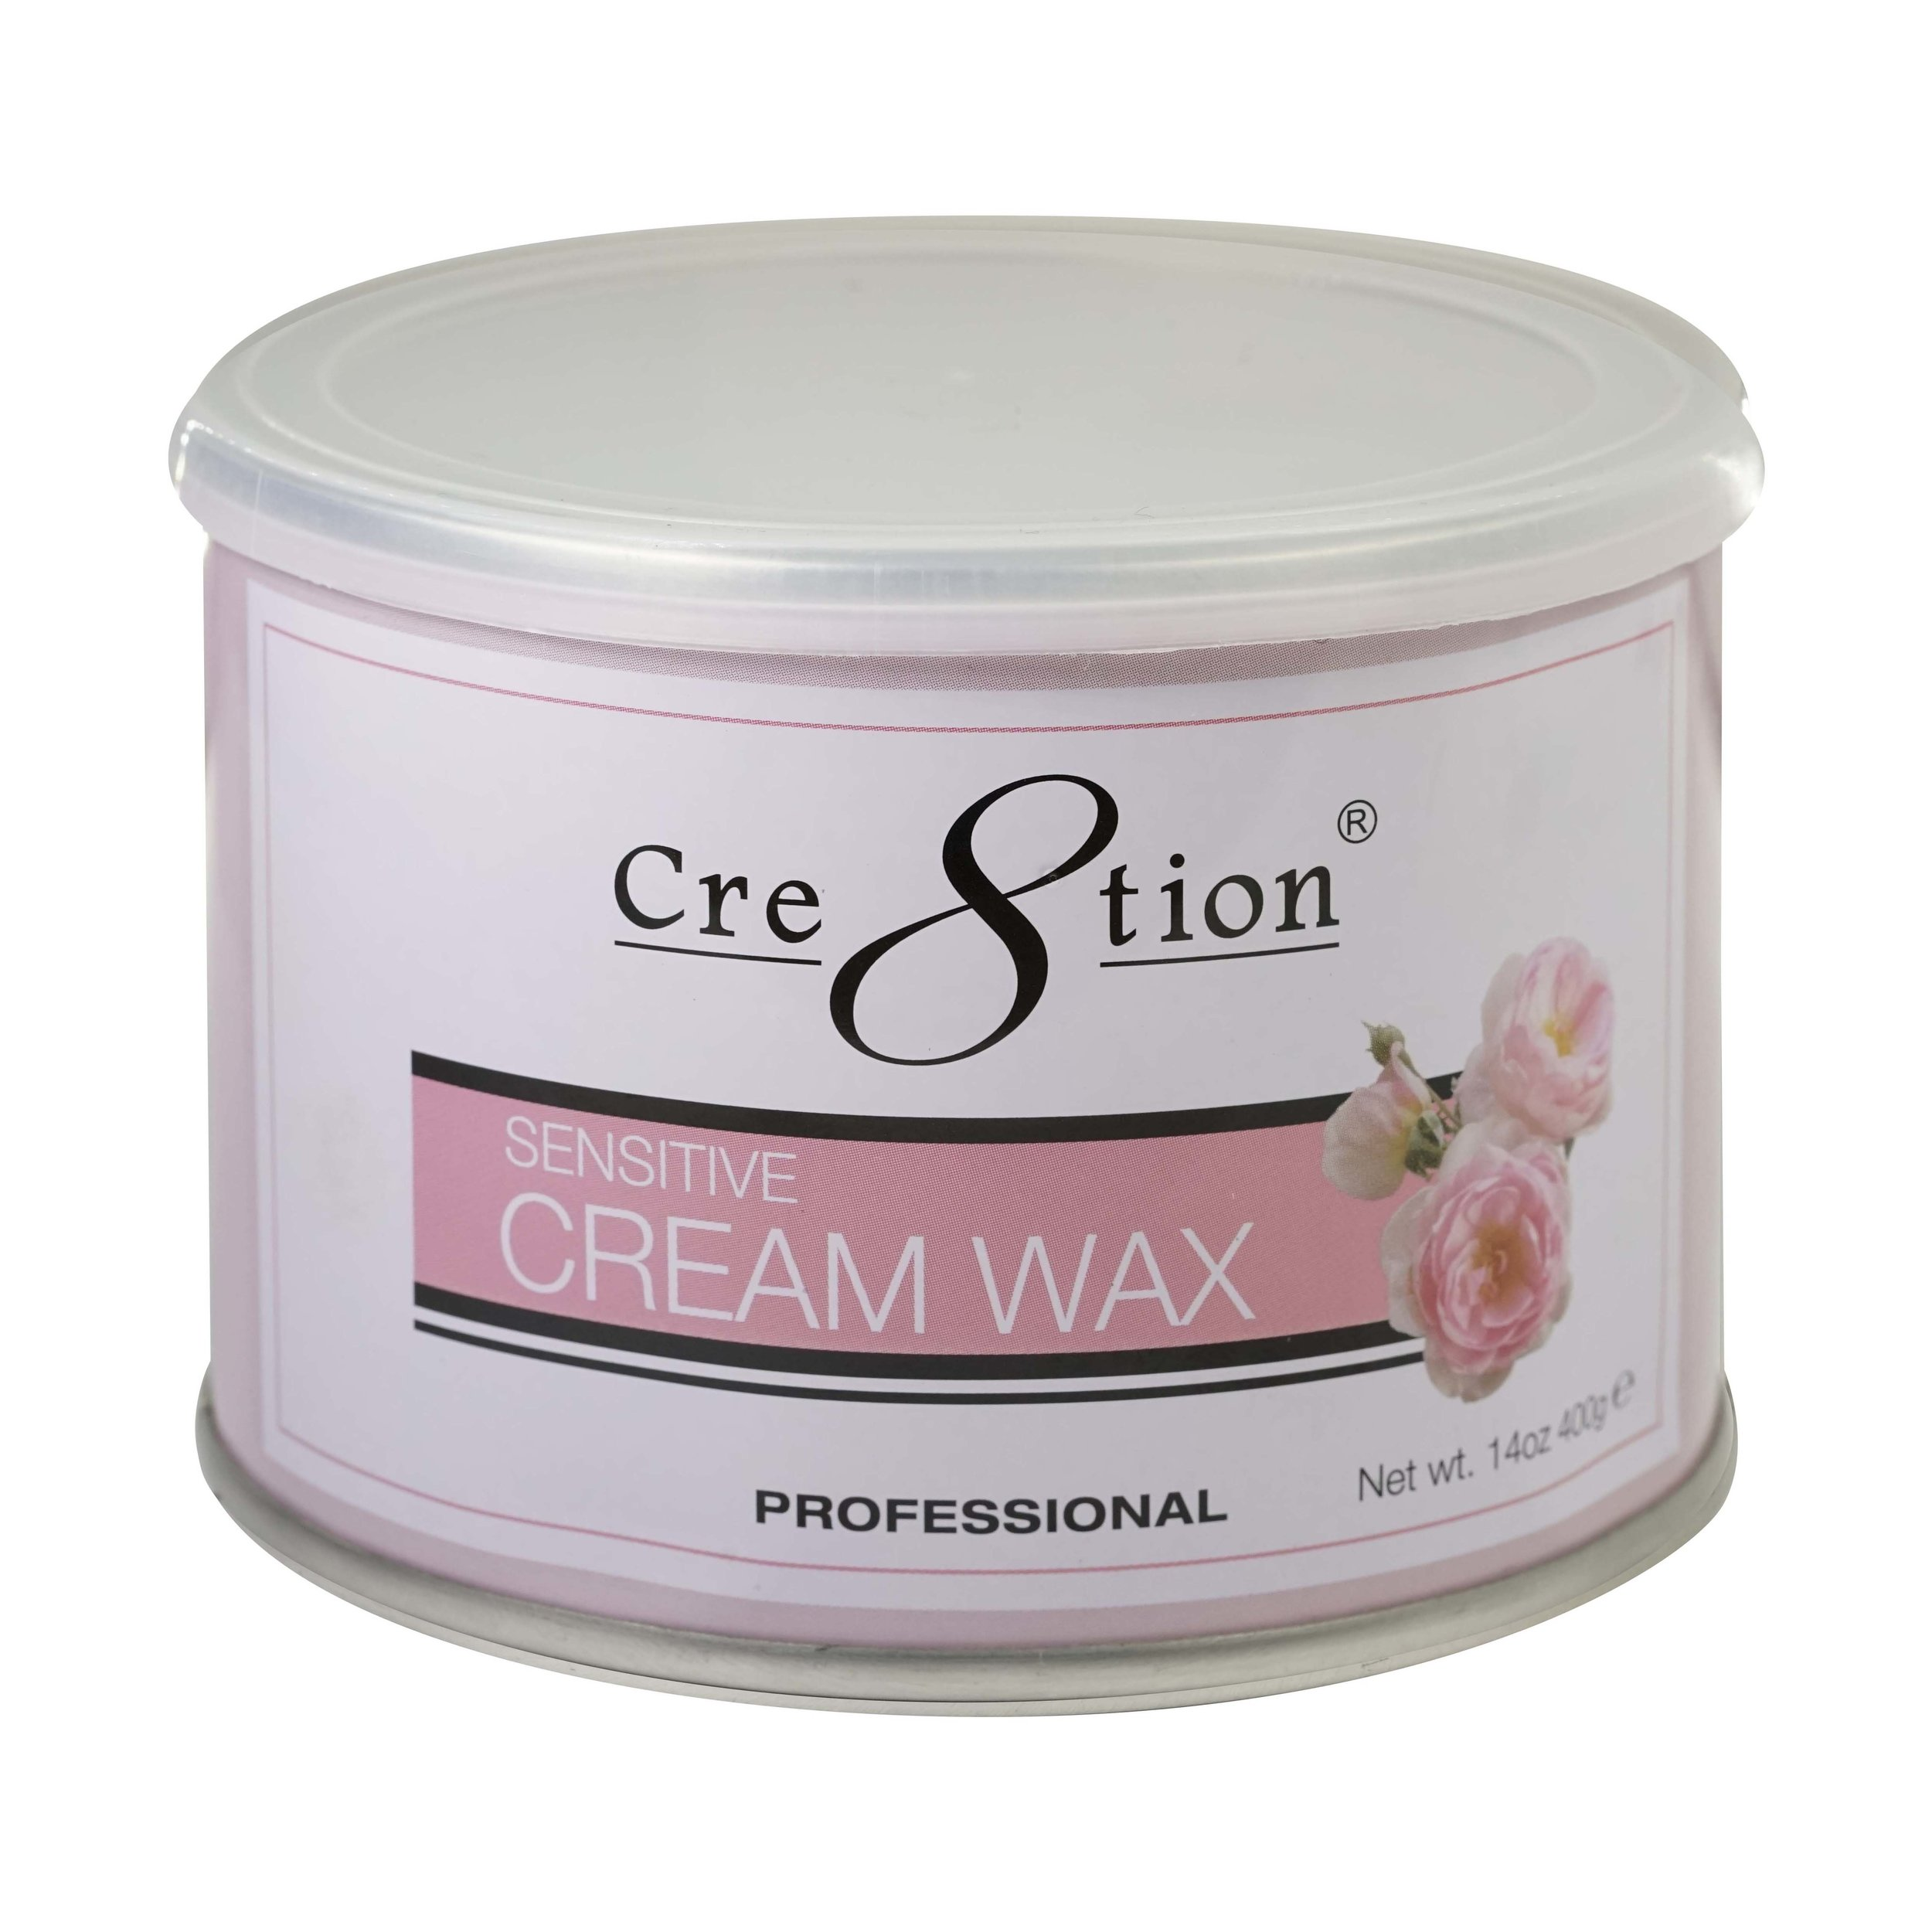 21135 - Cream wax 14oz   24 pcs./case, 72 cases/pallet